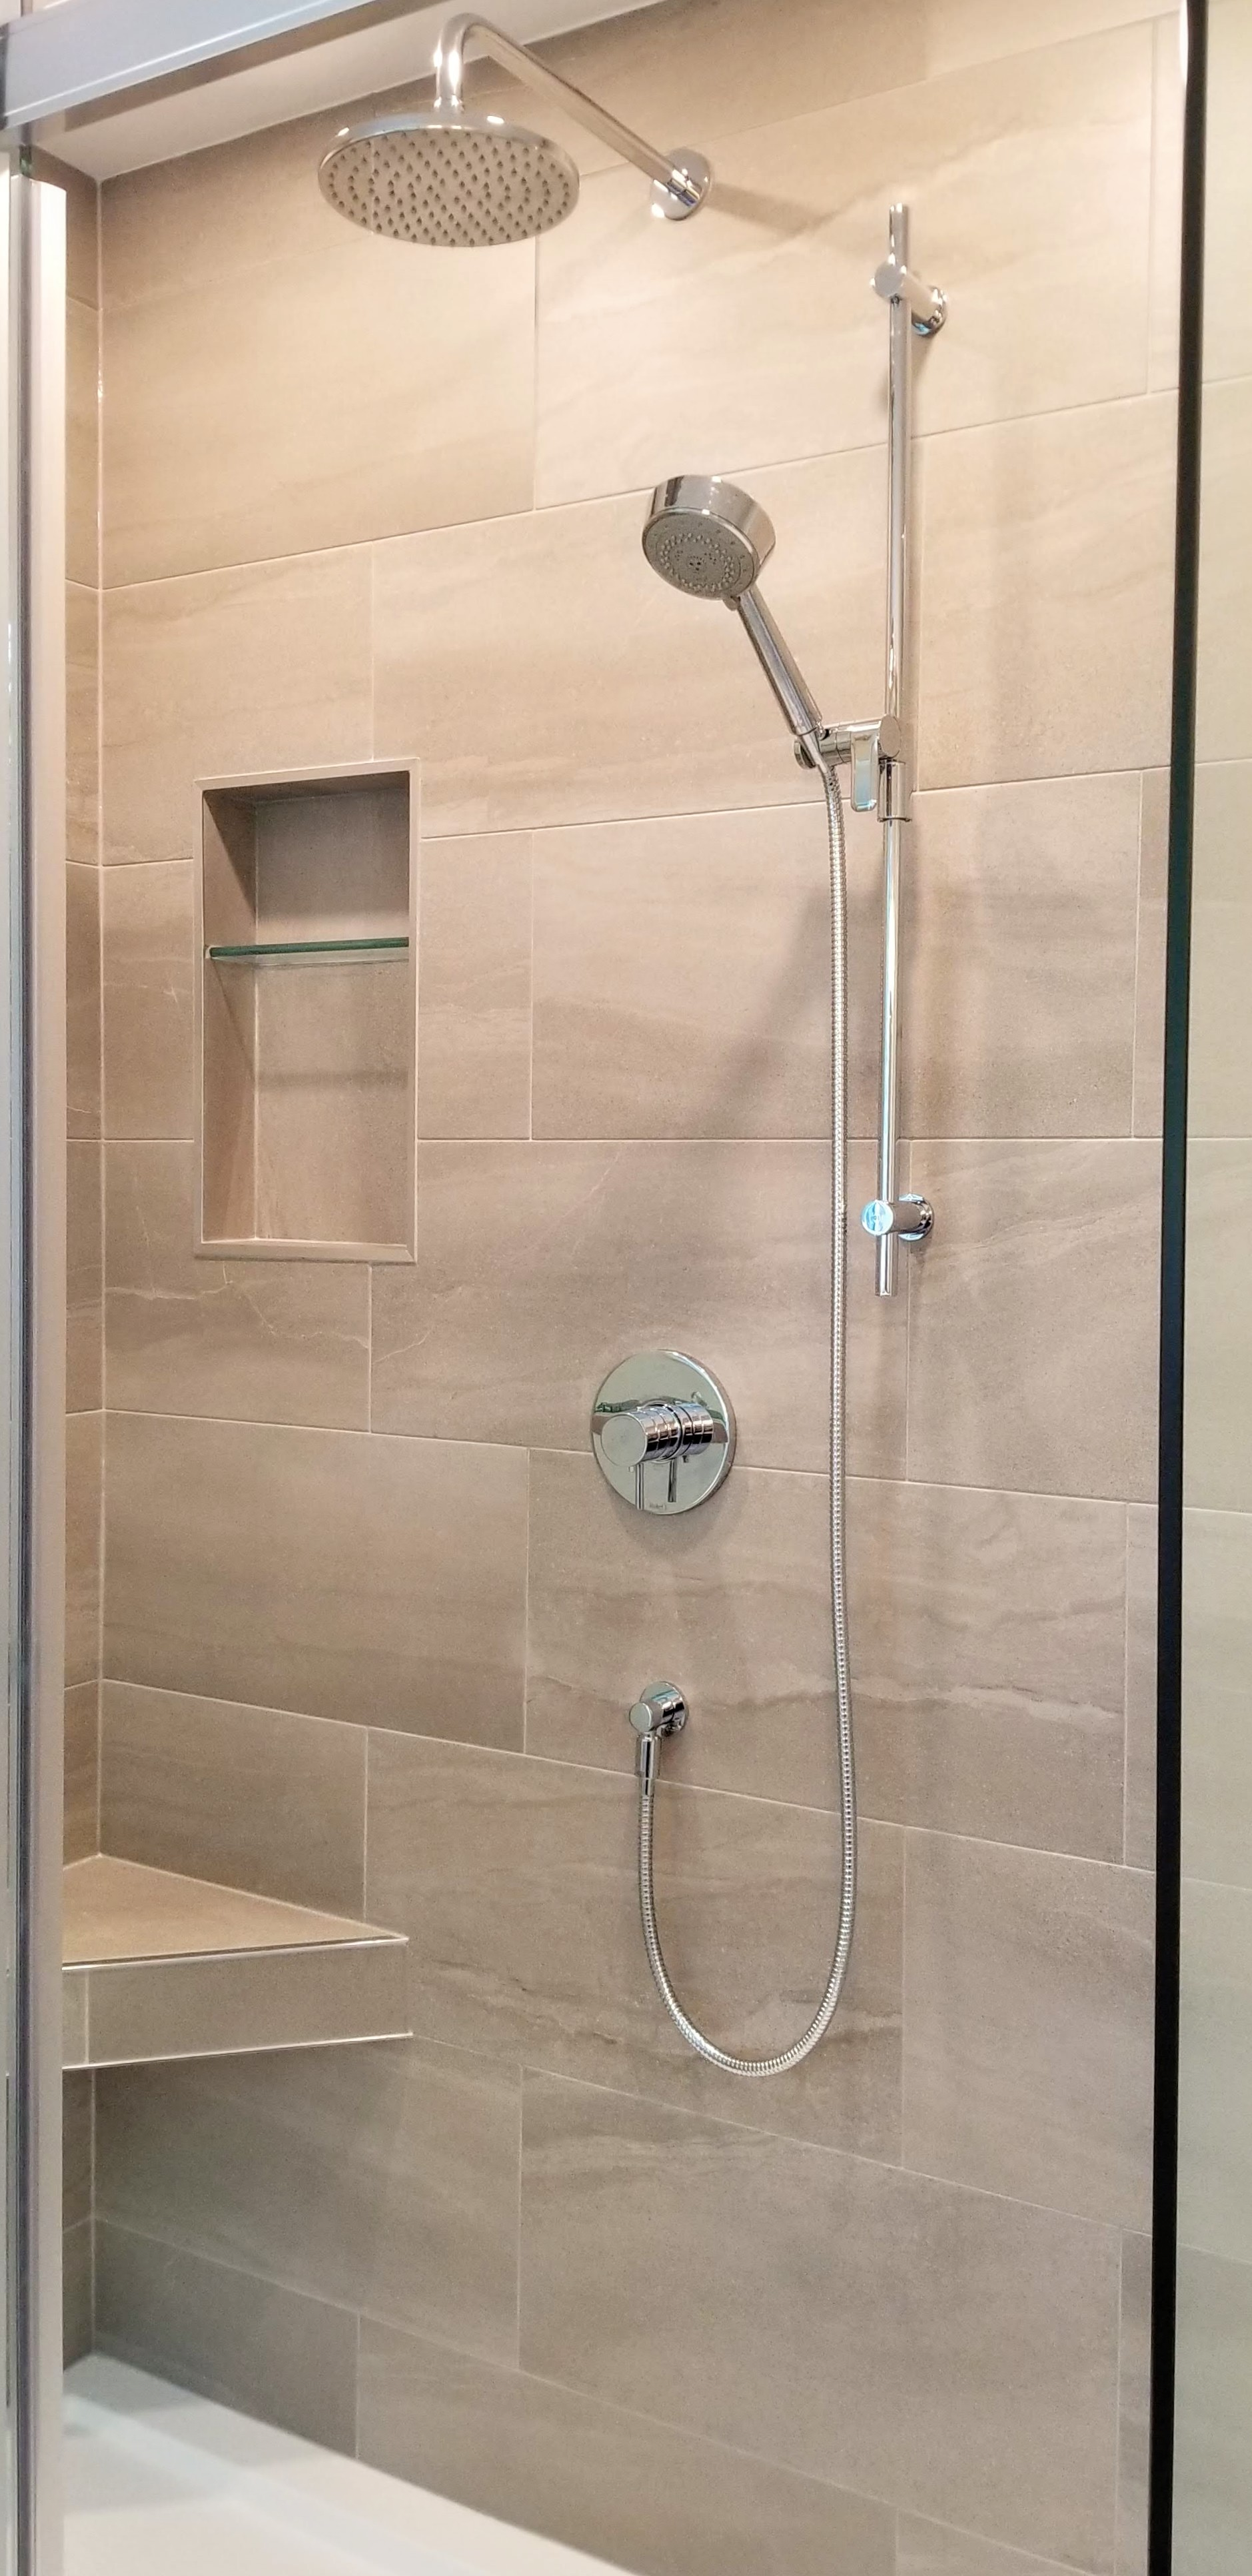 Tiled shower with niche installed in ensuite bathroom by Germano Creative Interior Contracting Ltd.